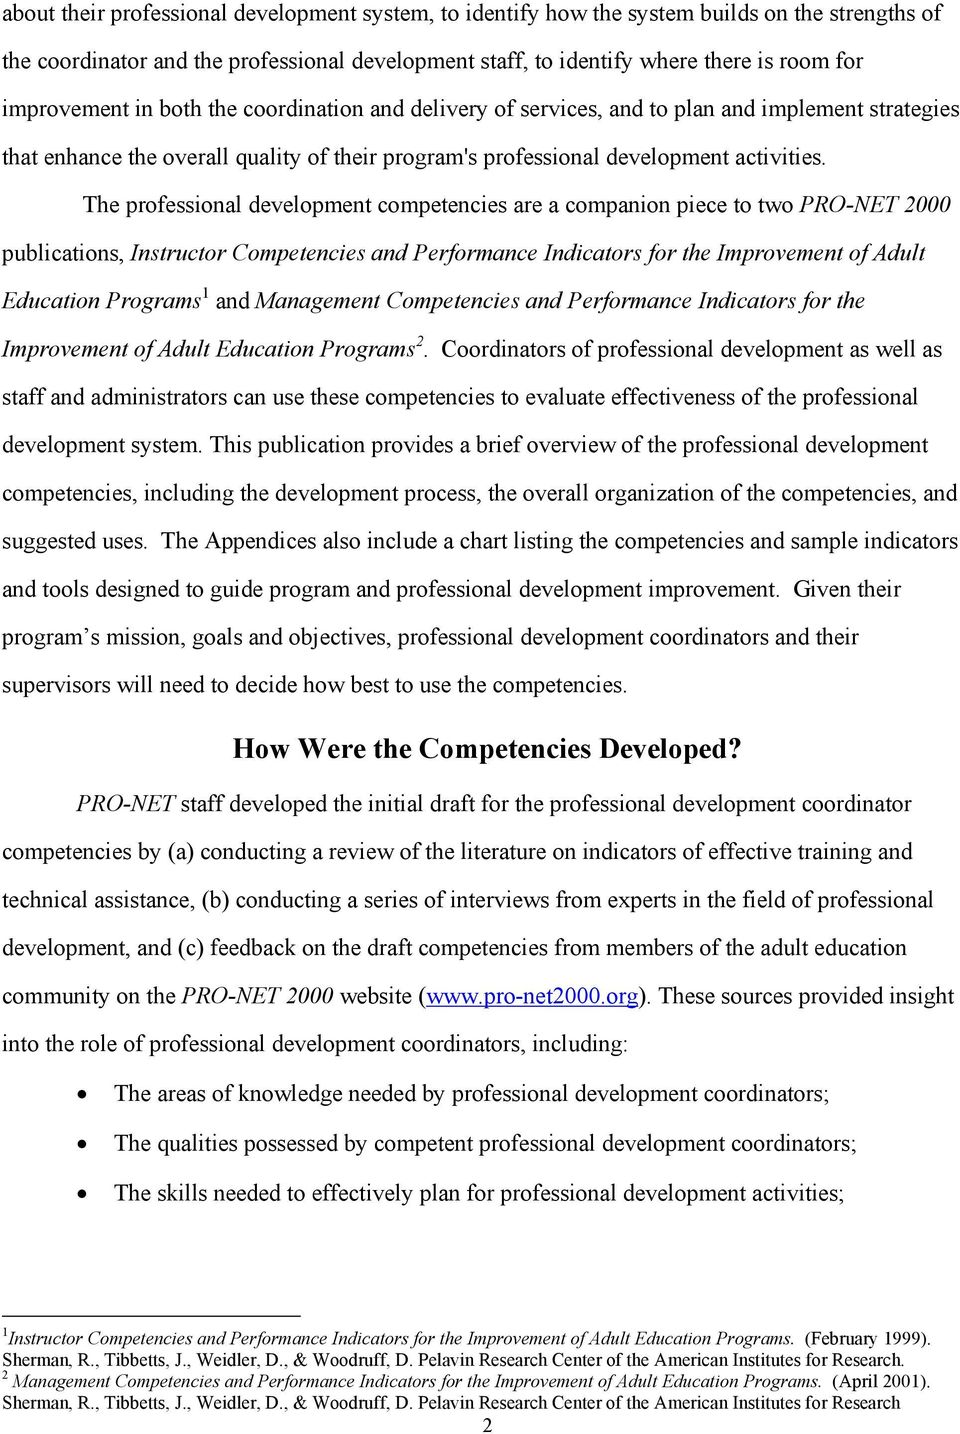 The professional development competencies are a companion piece to two PRO-NET 2000 publications, Instructor Competencies and Performance Indicators for the Improvement of Adult Education Programs 1